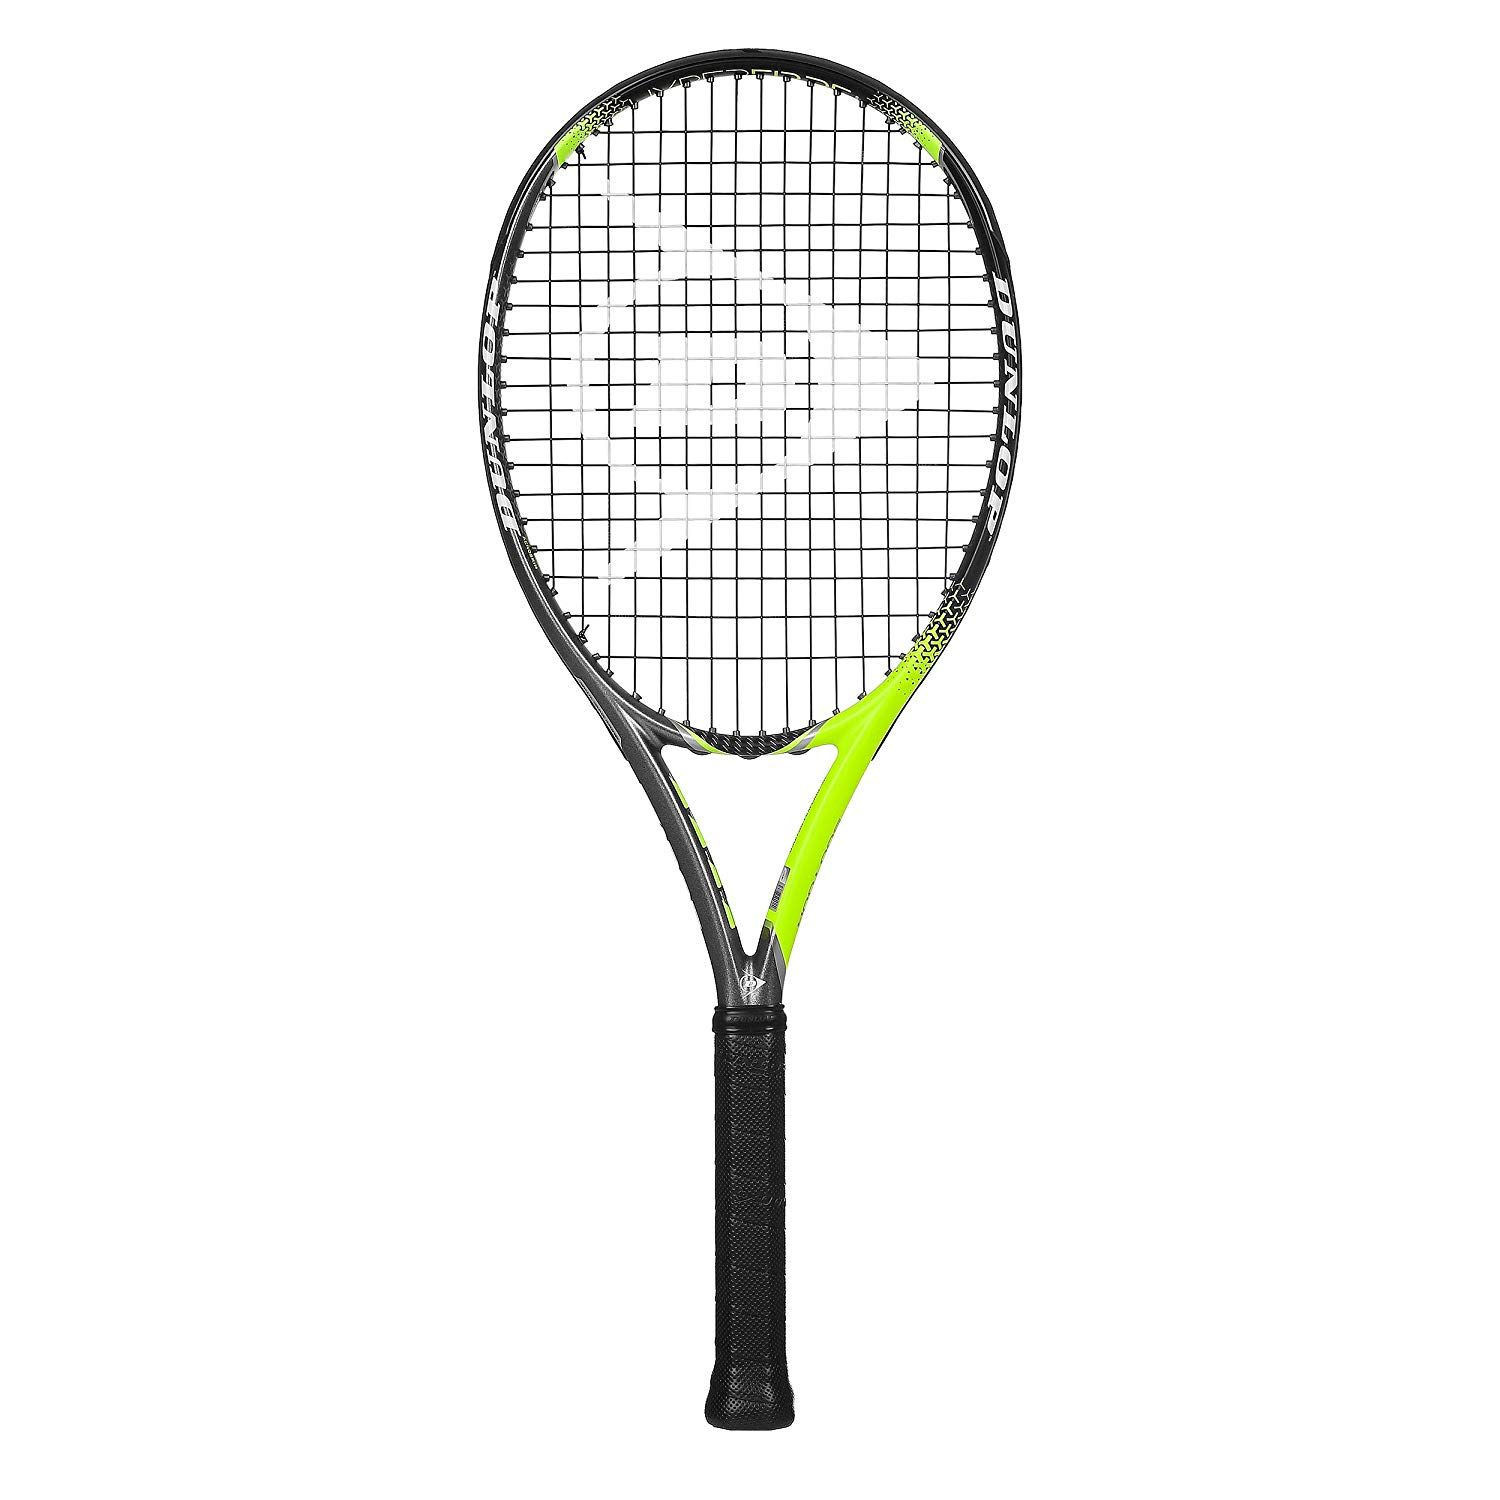 Raqueta dunlop biomimetic 500 tour